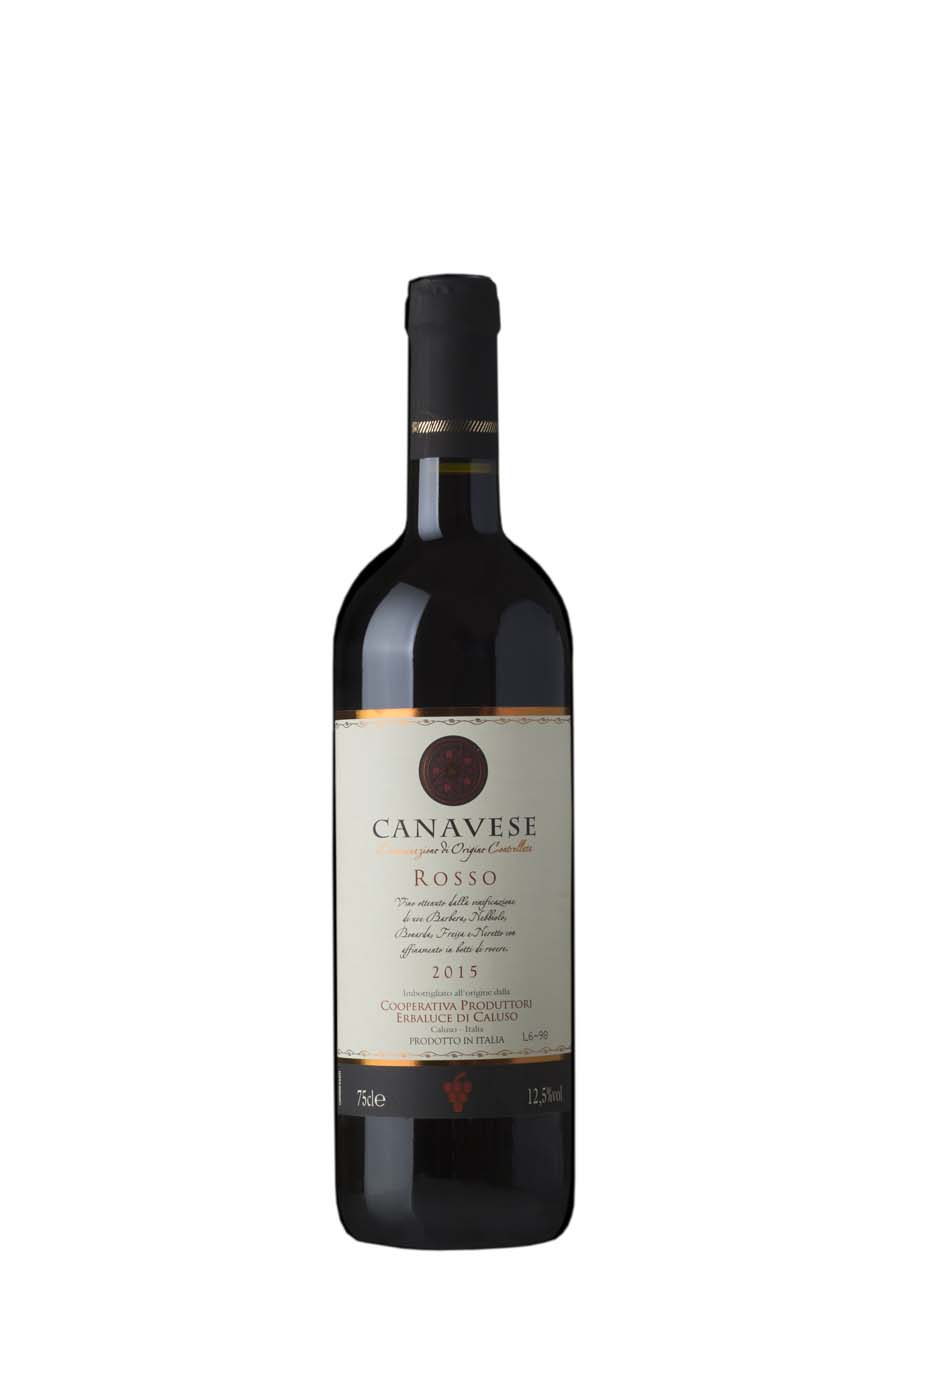 Canavese doc Rosso